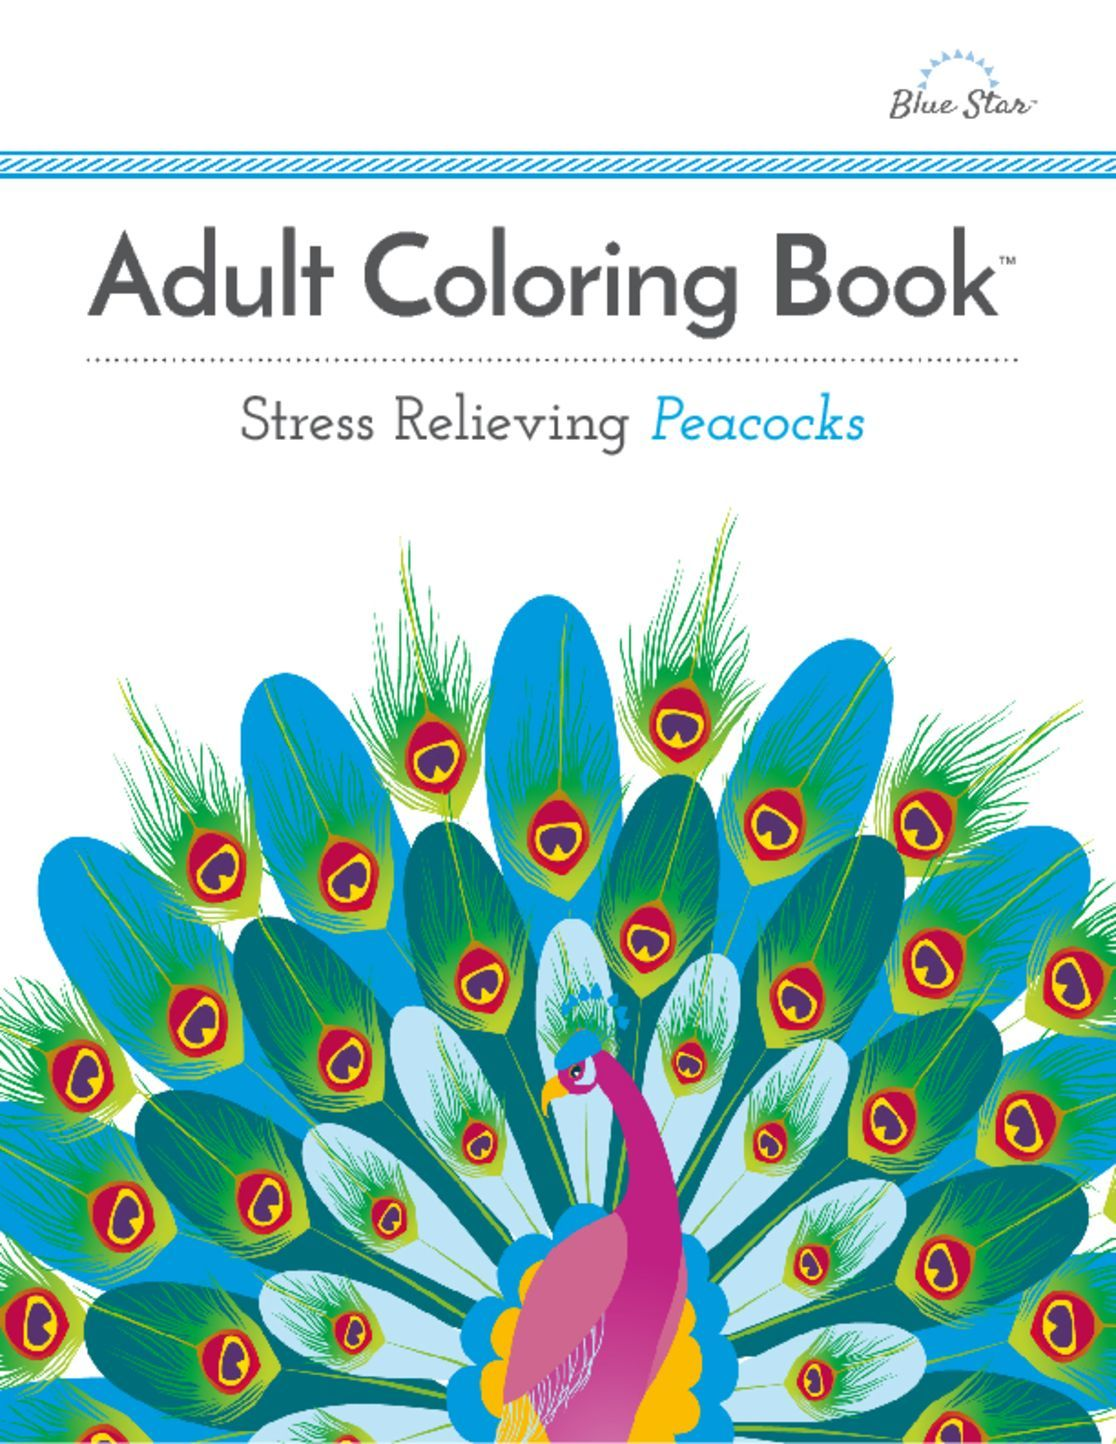 Adult Coloring Book Stress Relieving Peacocks Digital